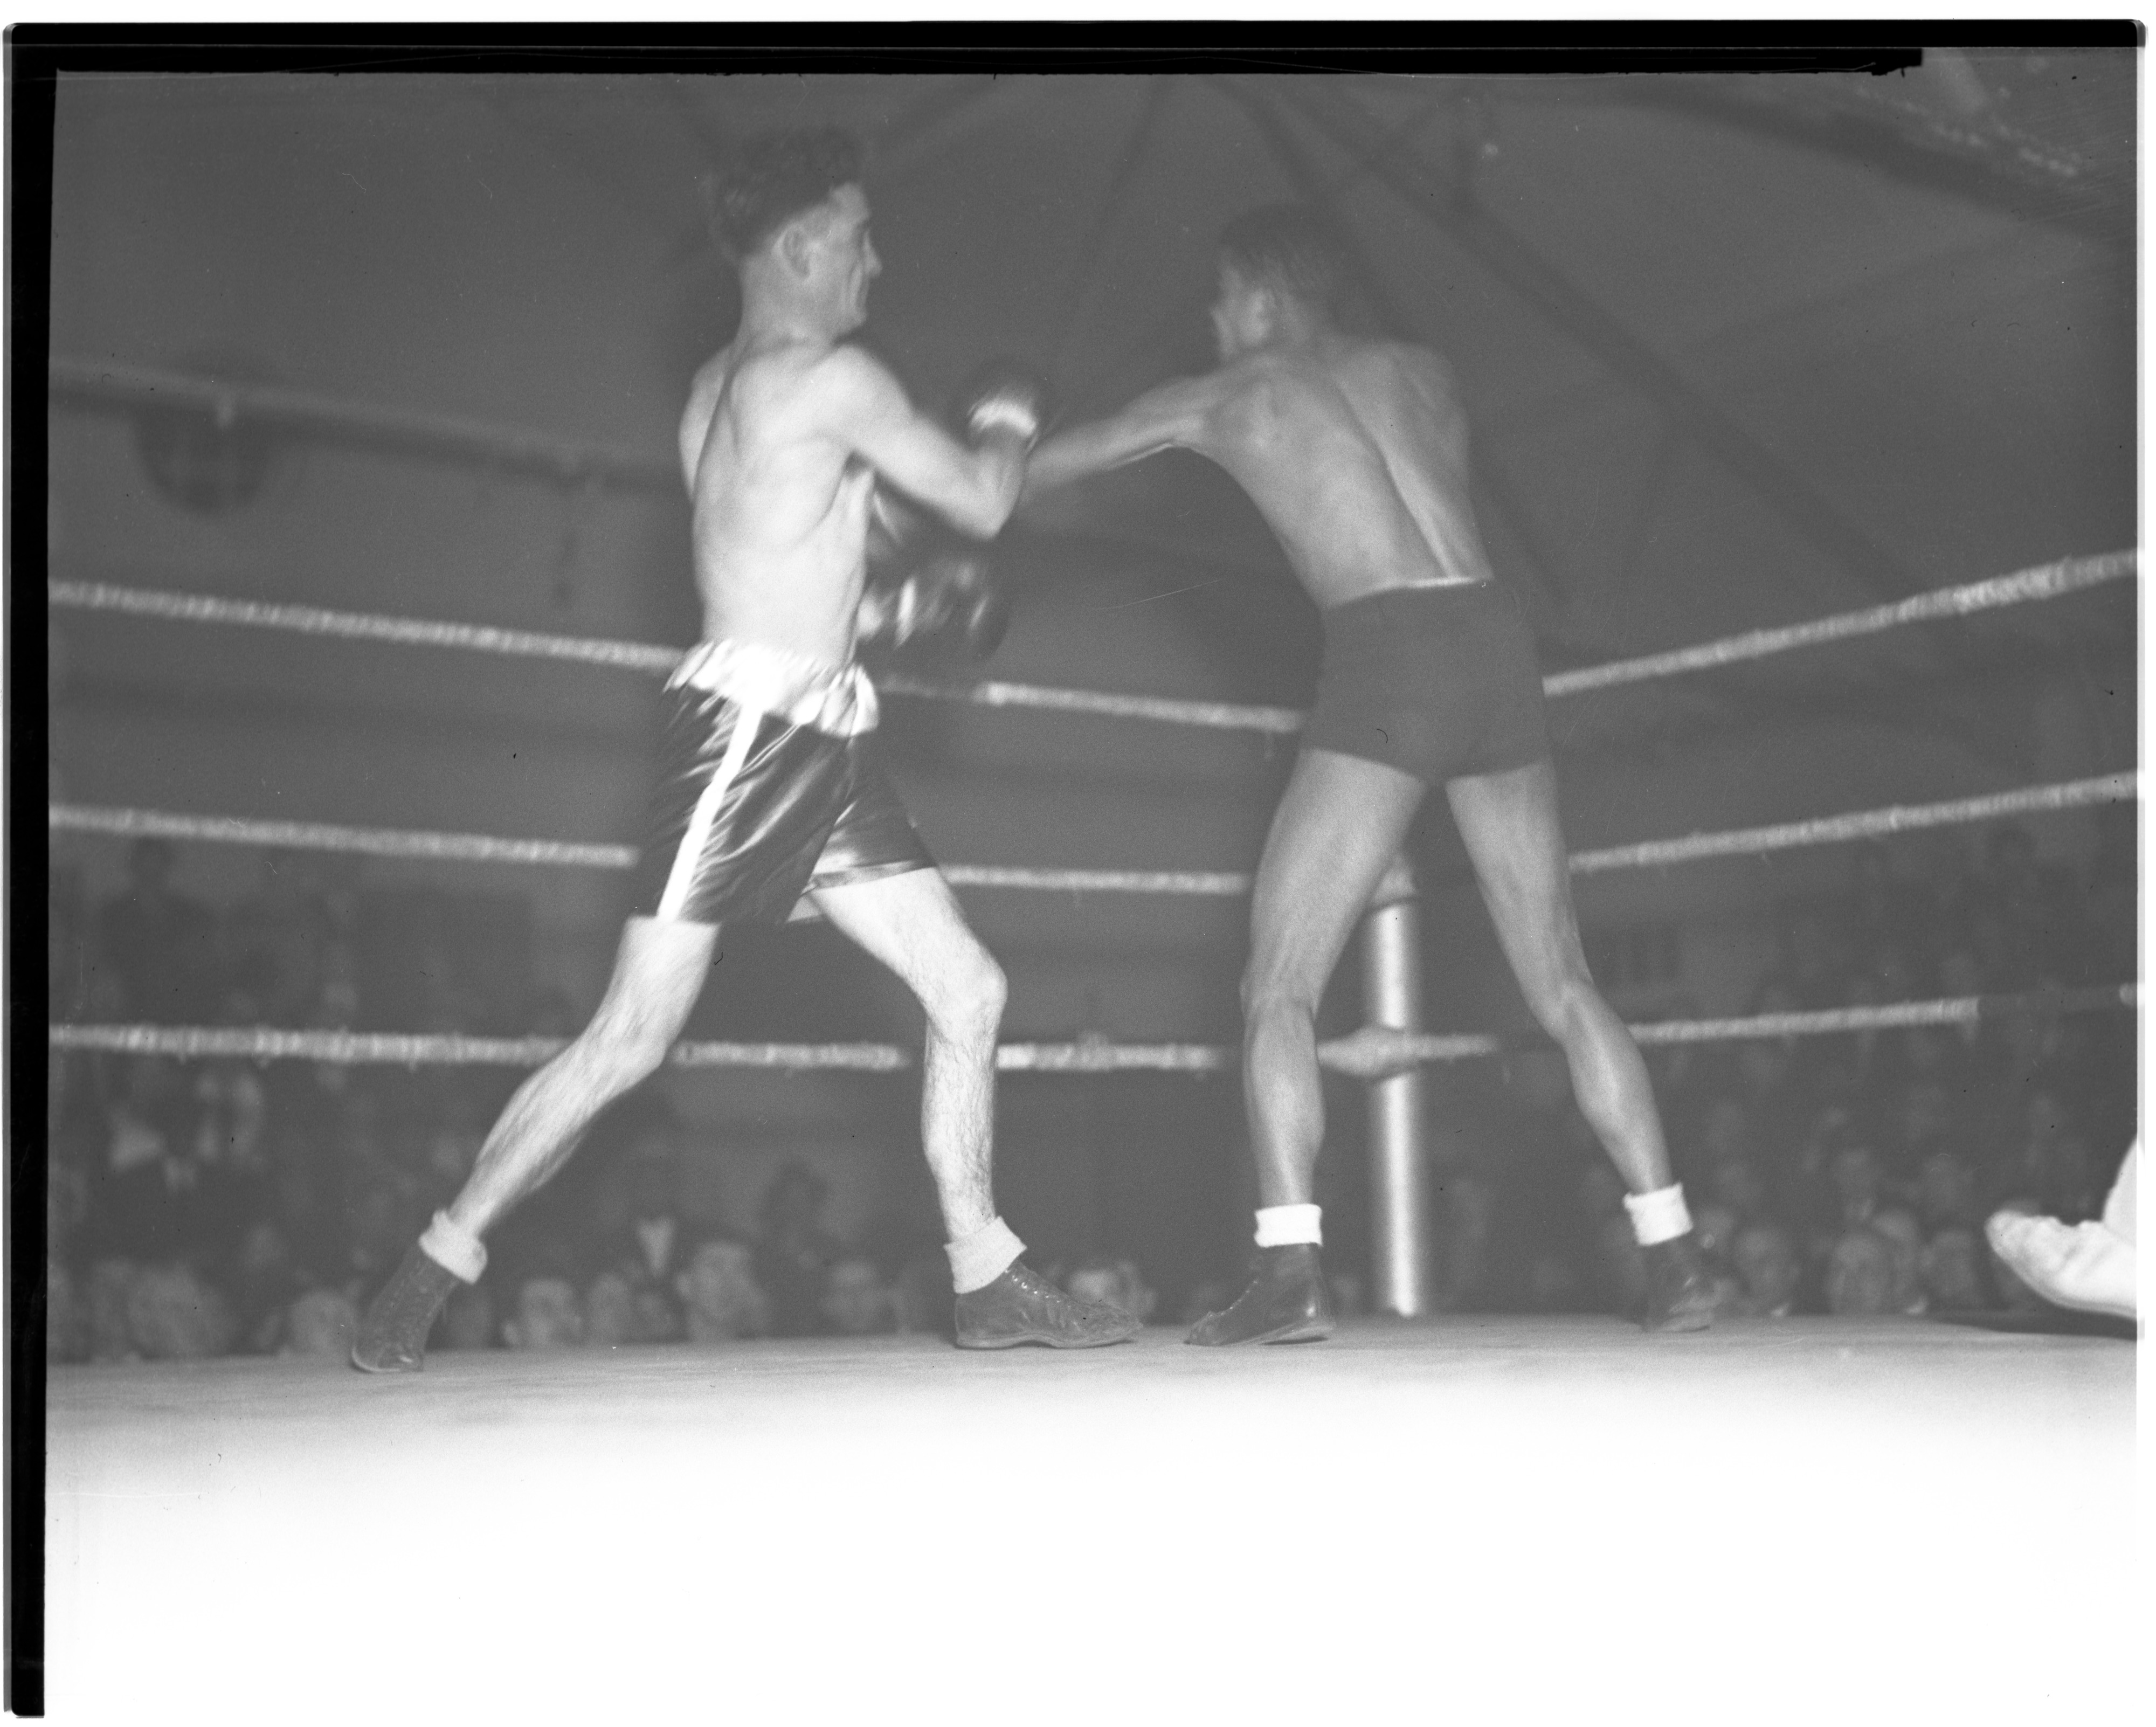 Gerald Coon and Eddie Scott during a Golden Gloves bout, January 1936  image